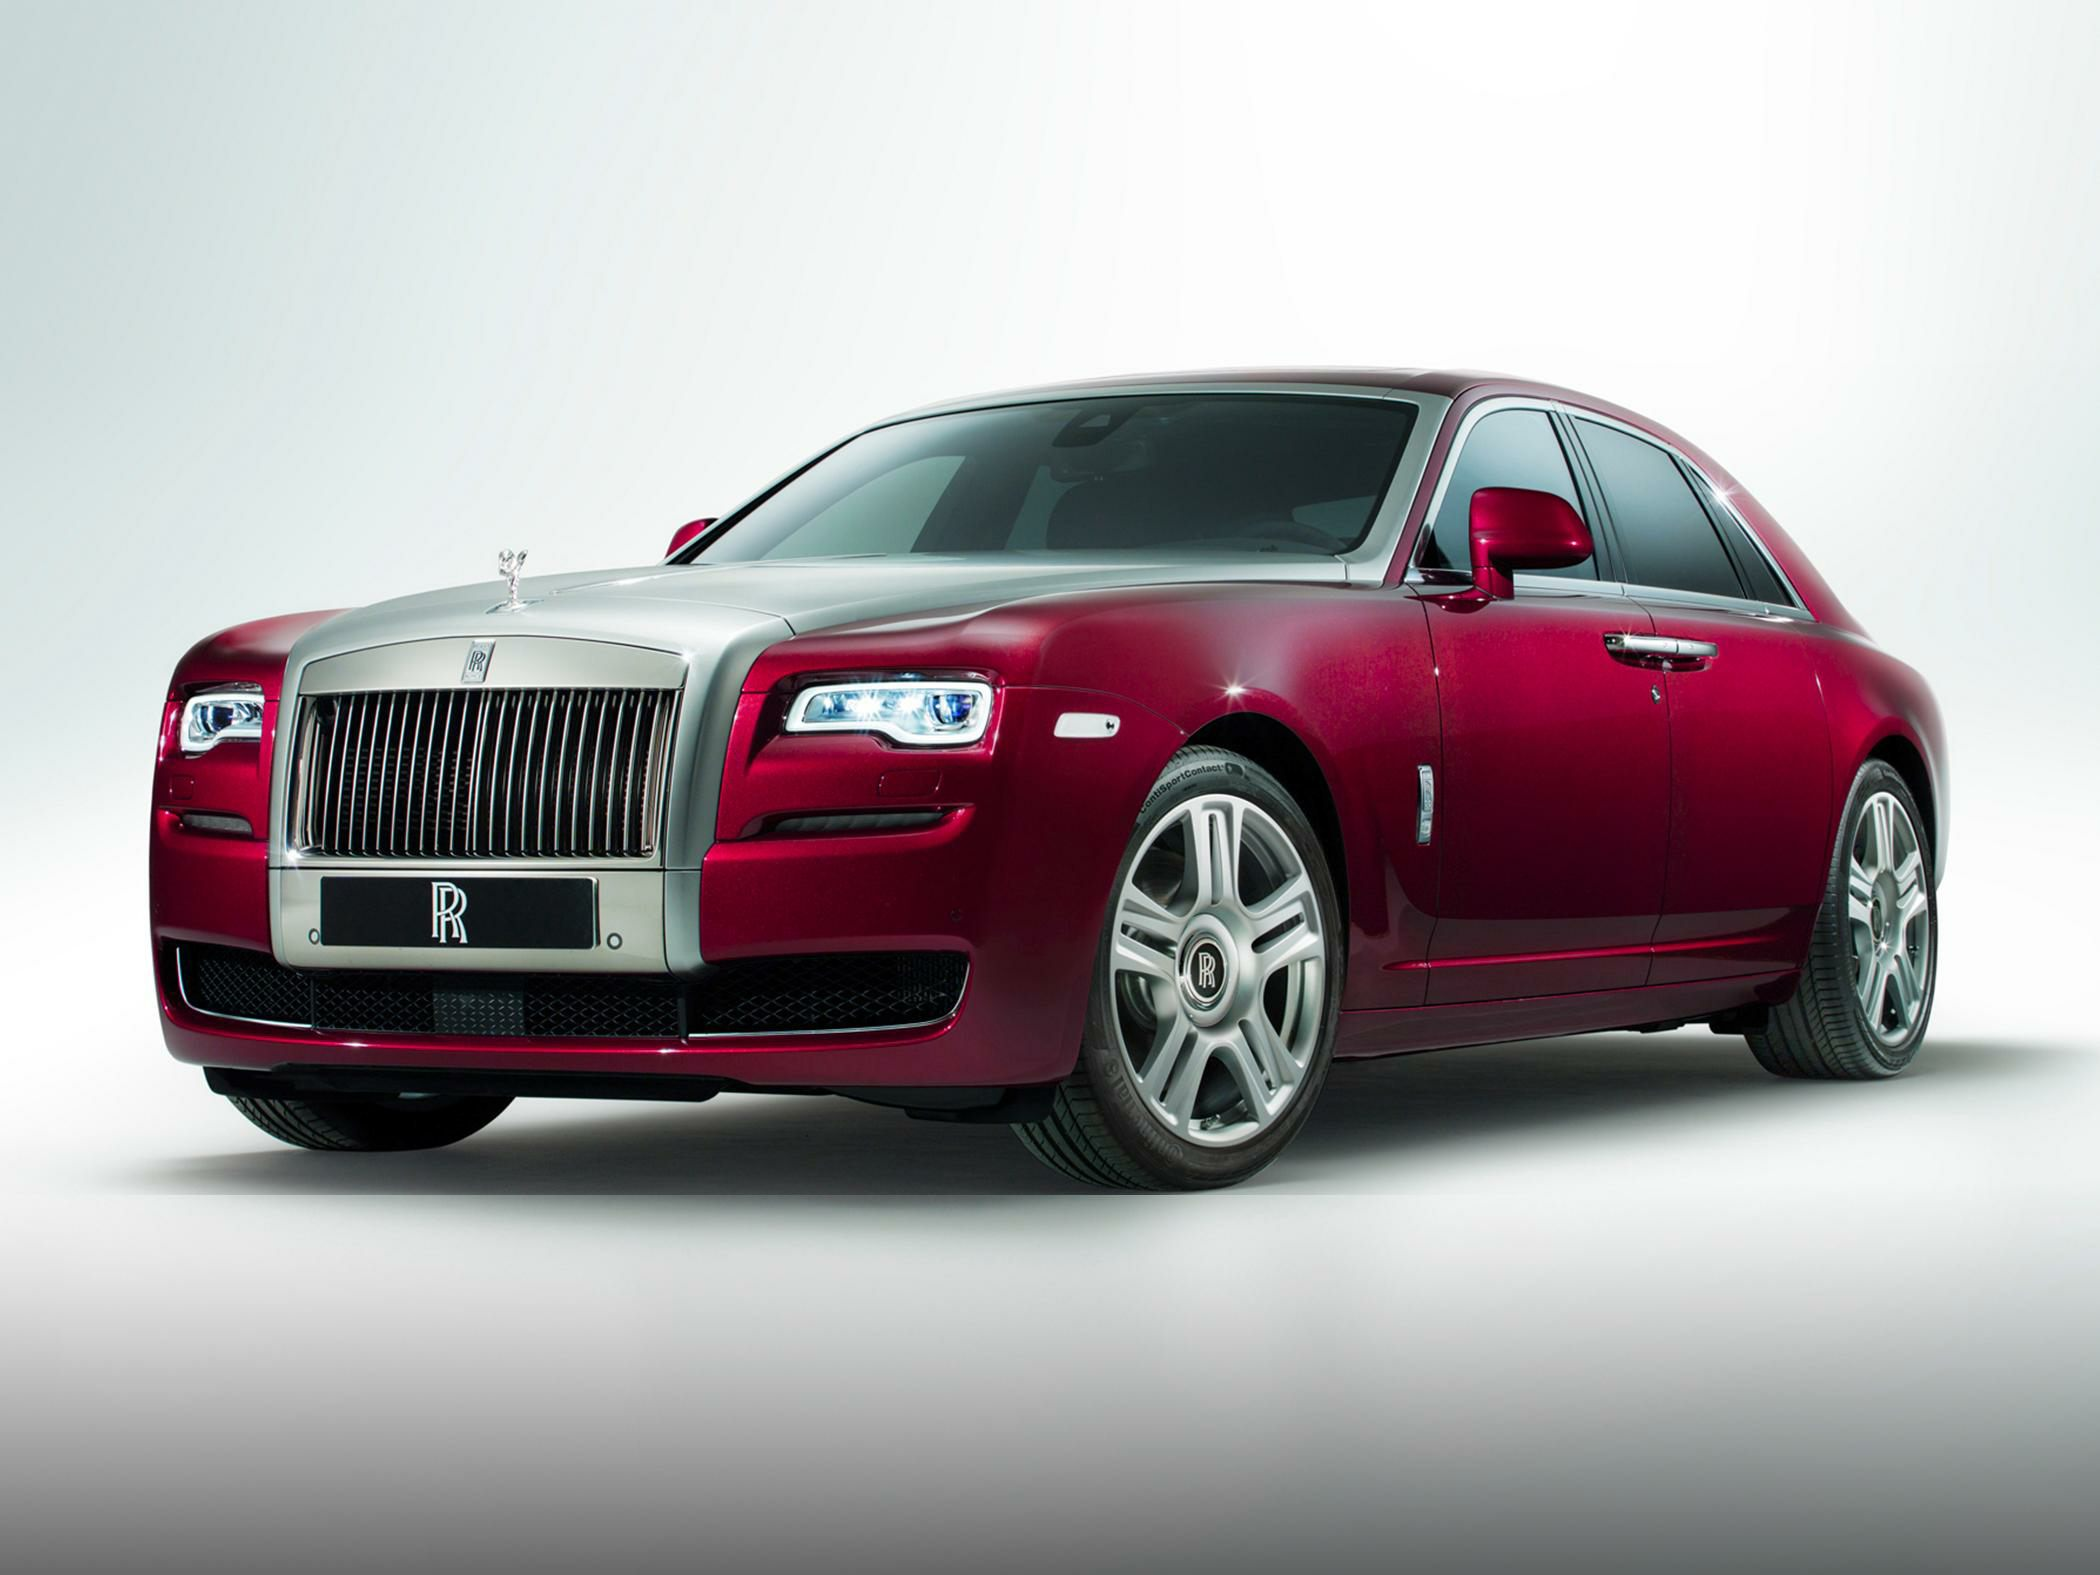 Rolls-Royce rolls out more powerful Ghost V-Specification